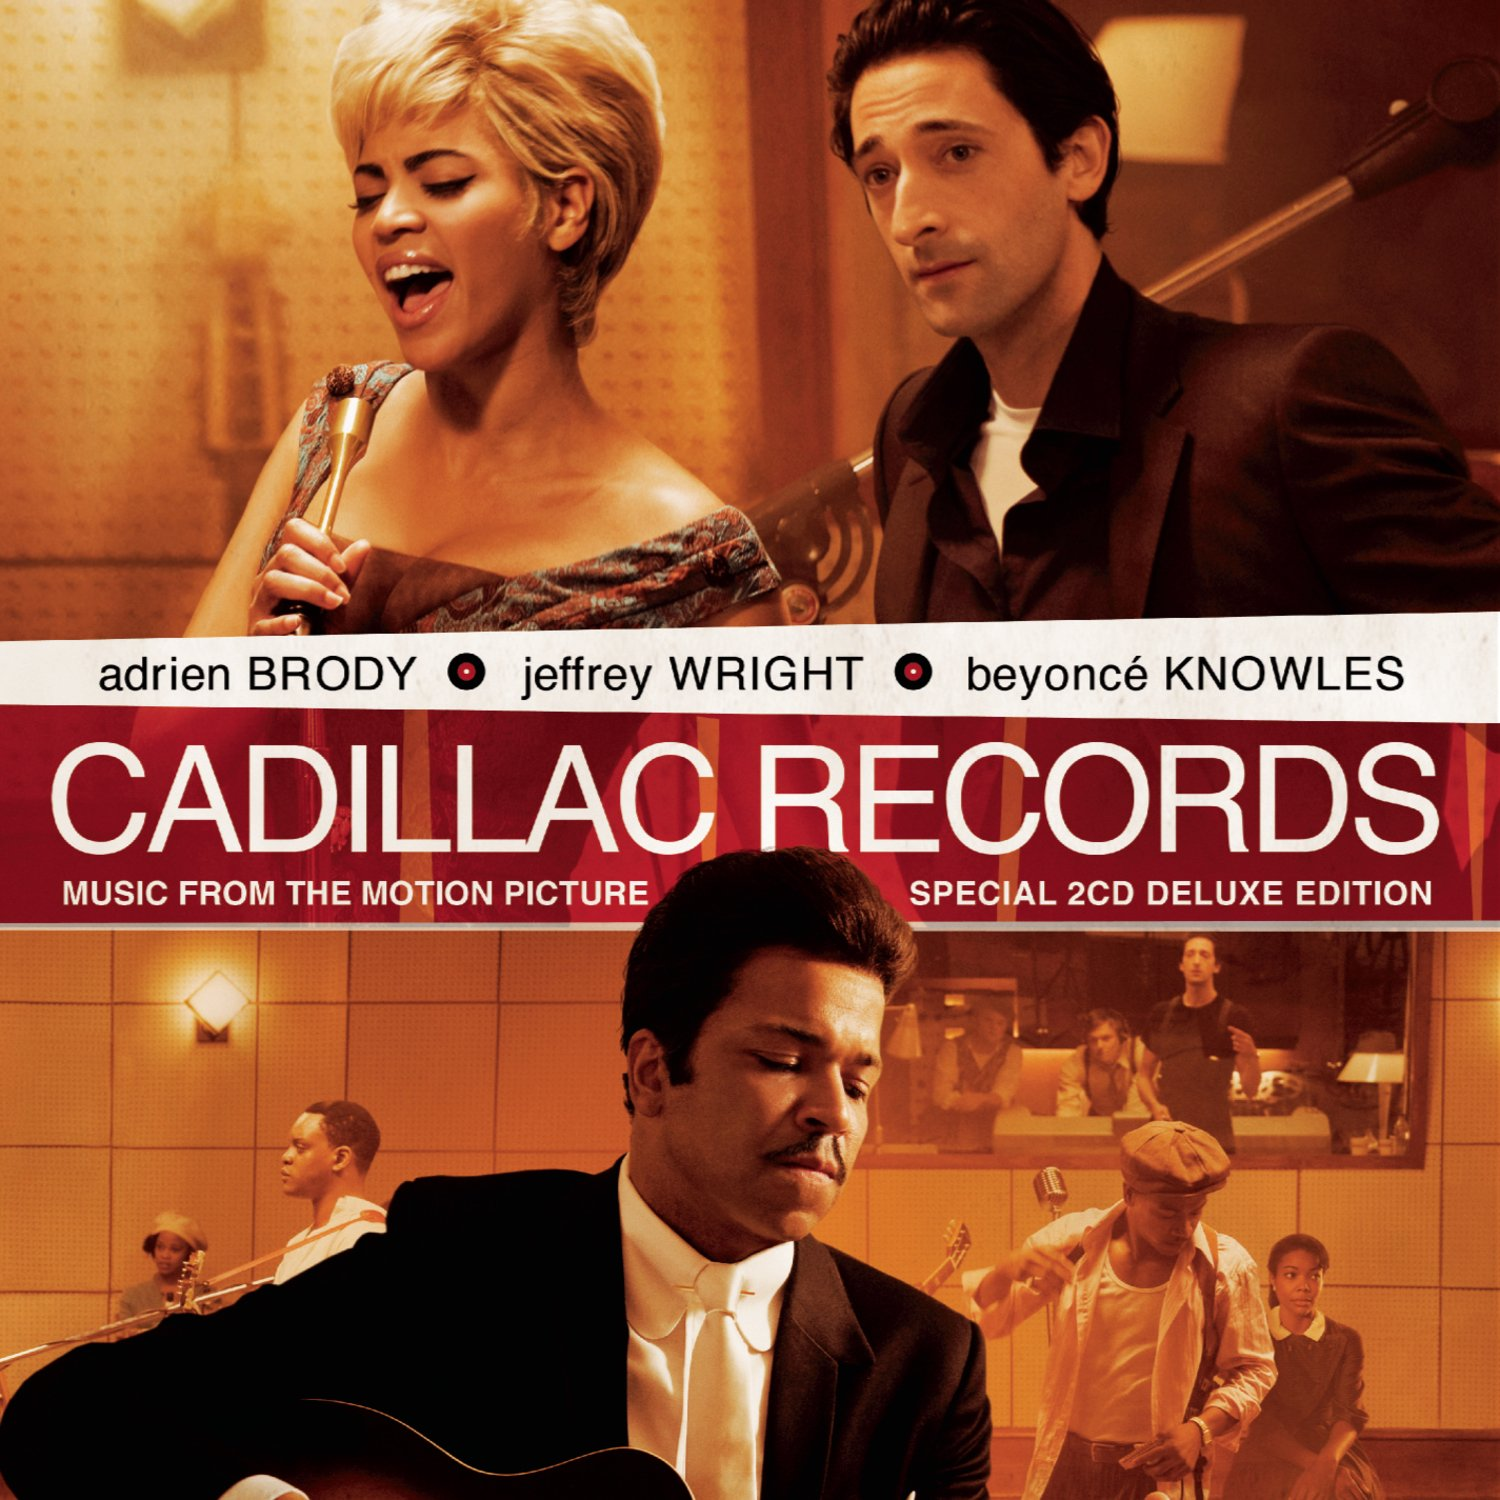 cadillac records full movie free download